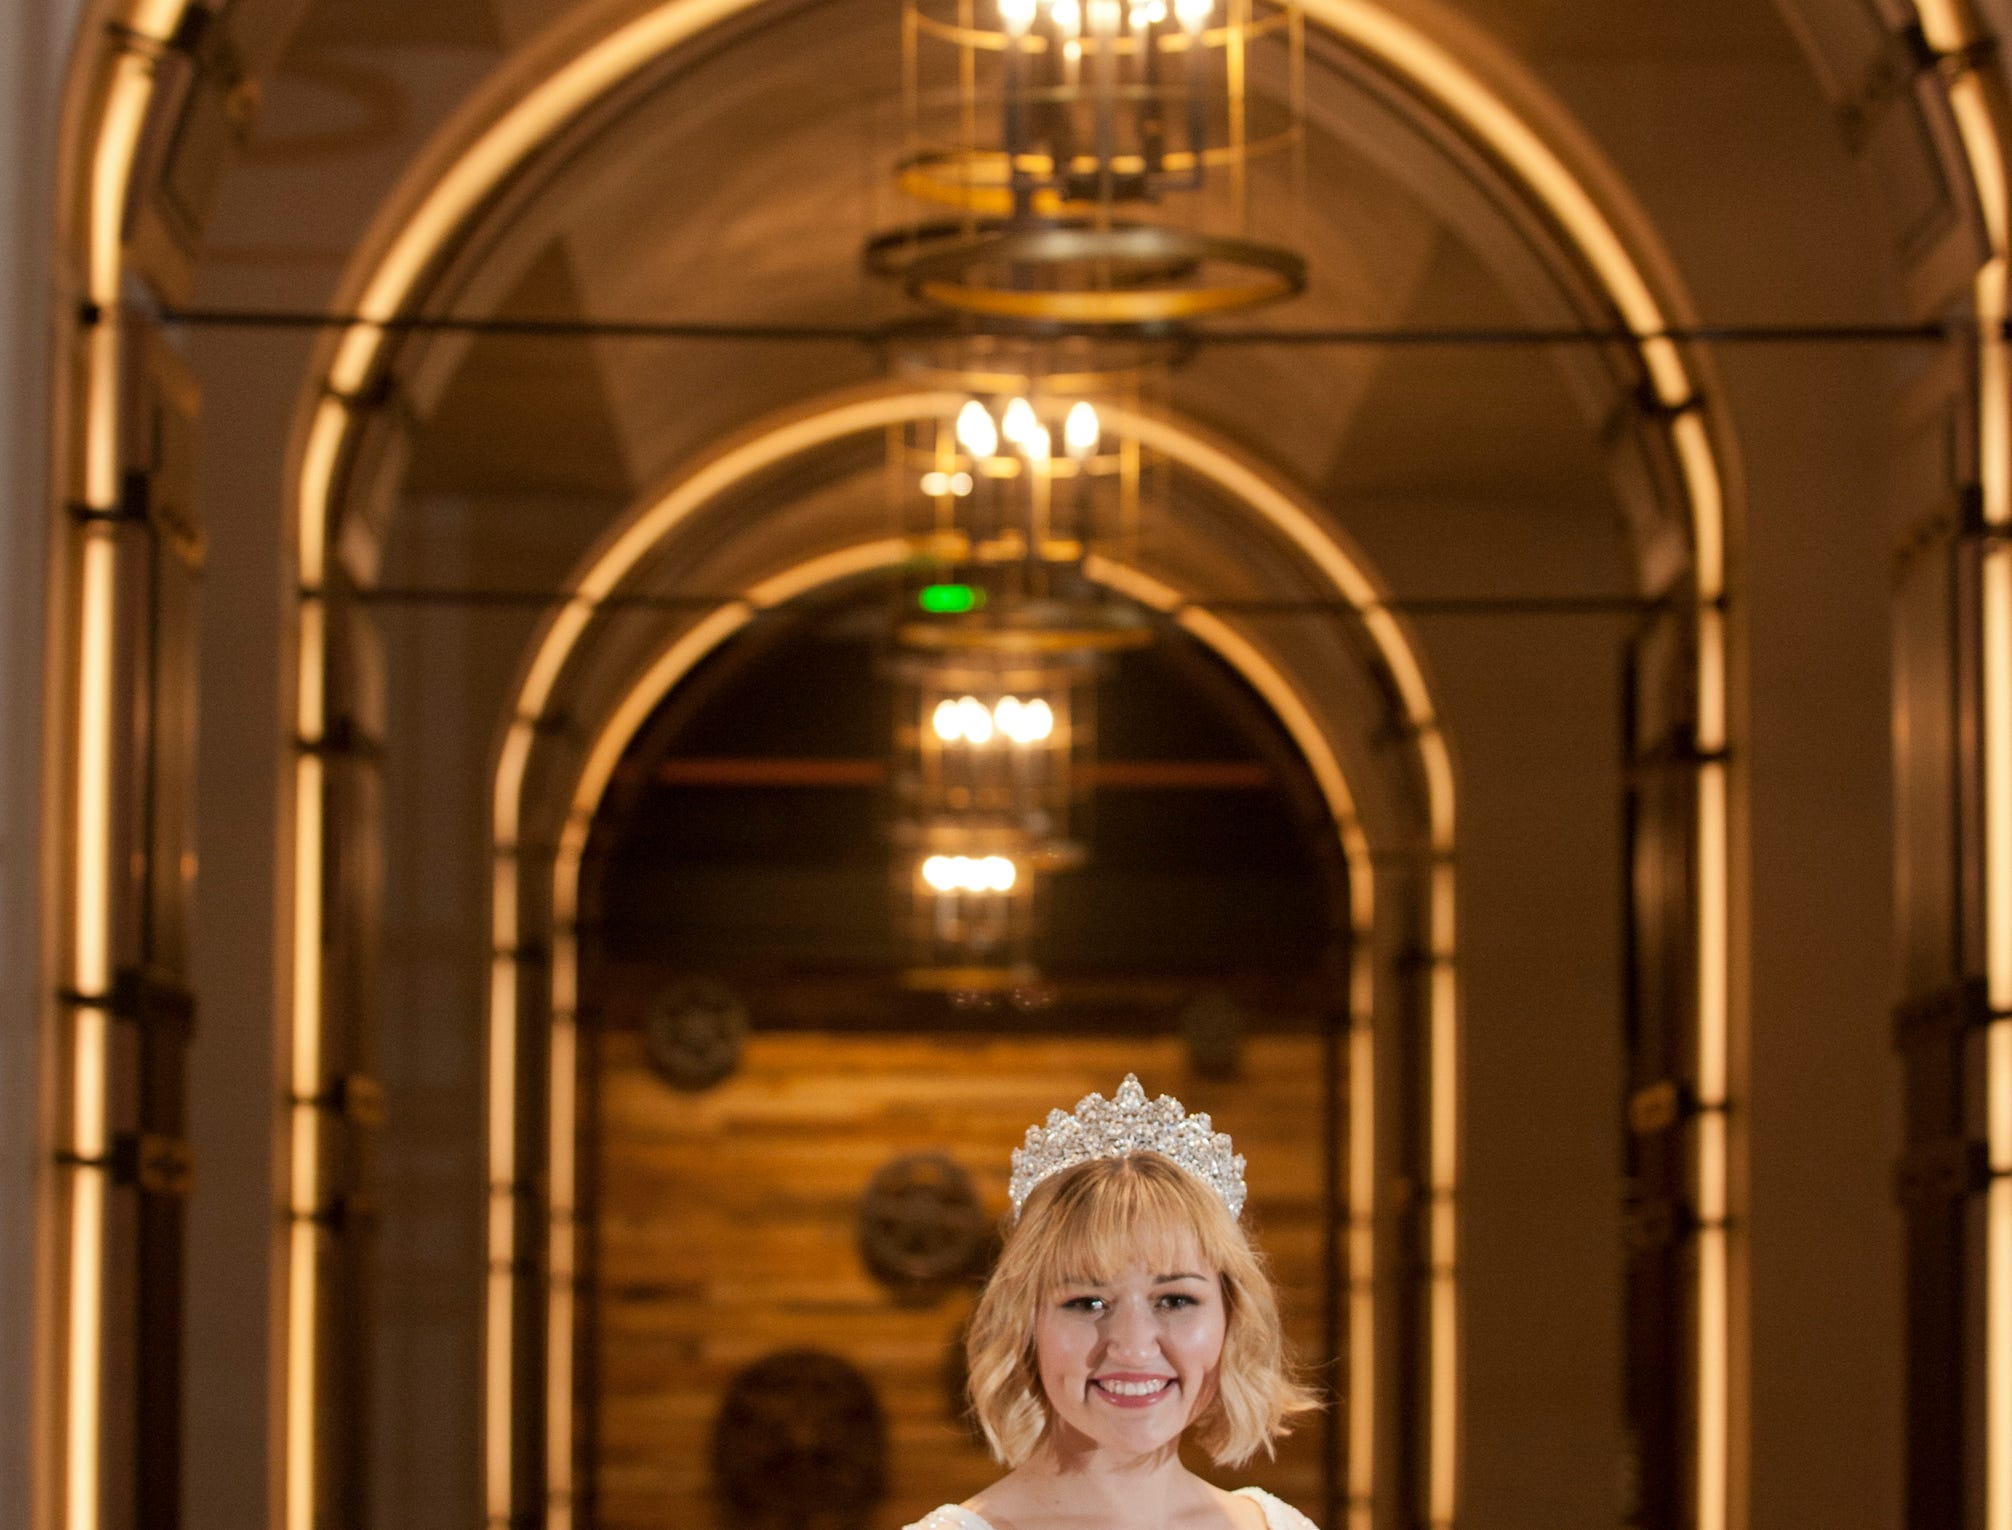 Kentucky Derby Festival Princess Kelsey Sutton, 22, of Brandenburg, Kentucky, is a Centre College senior majoring in mathematics and minoring in education. She posed in the lobby of the Omni Louisville Hotel. 06 January 2019